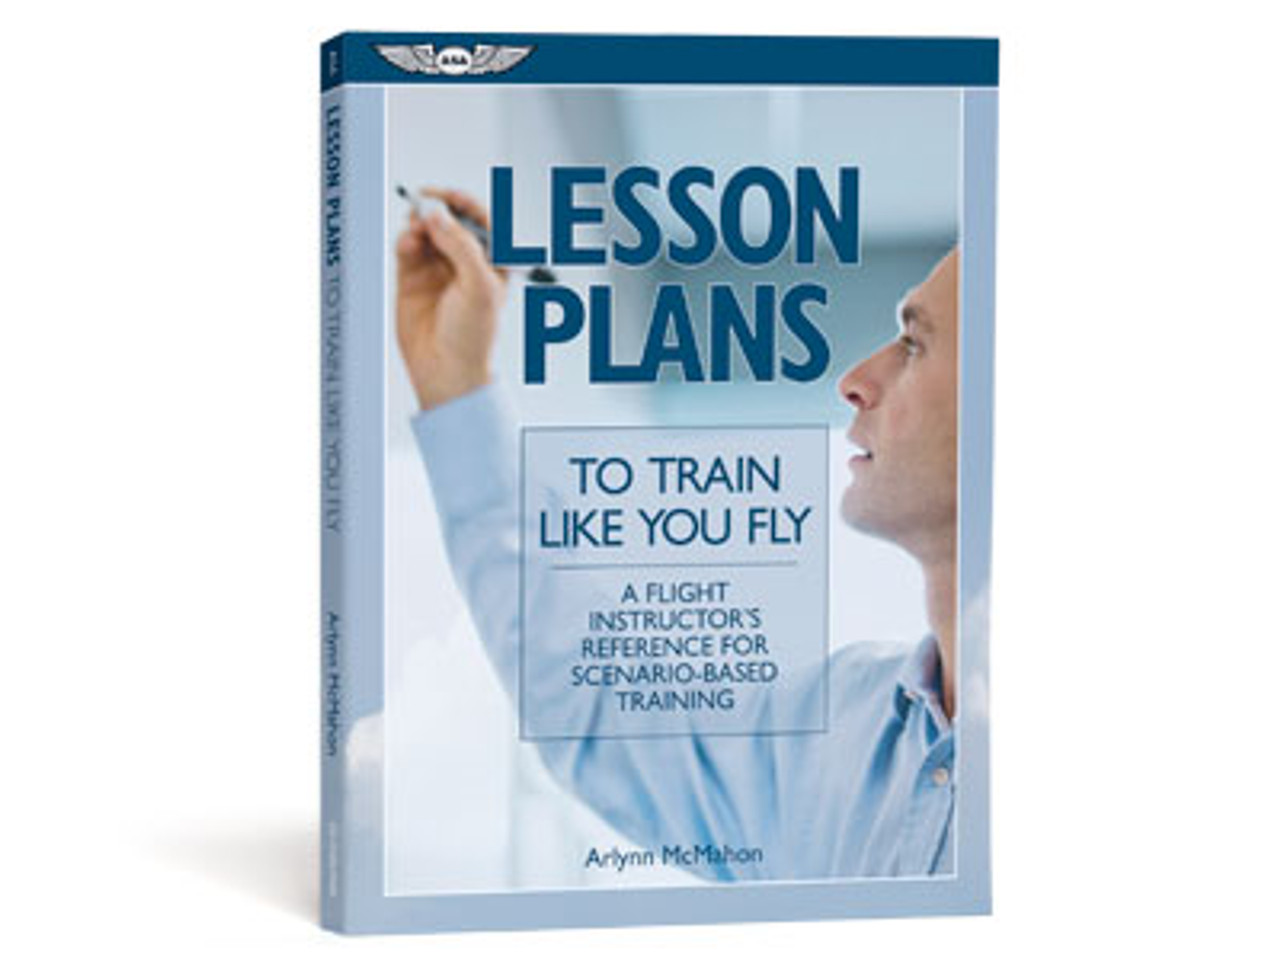 ASA Lesson Plans to Train Like You Fly